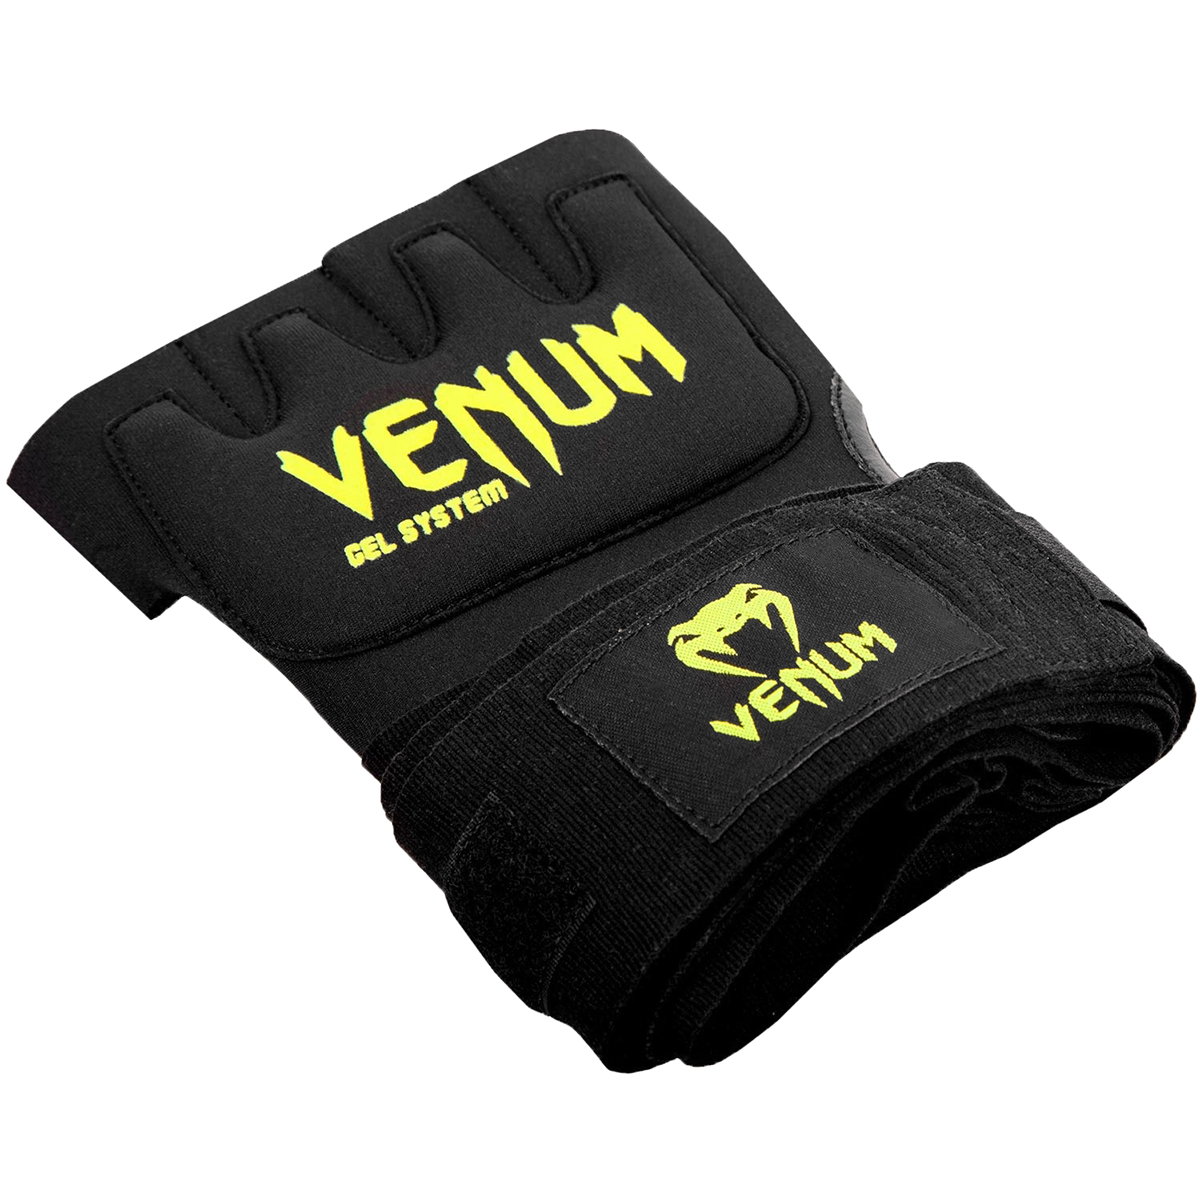 Venum-Kontact-Protective-Shock-Absorbing-Gel-MMA-Glove-Wraps thumbnail 33